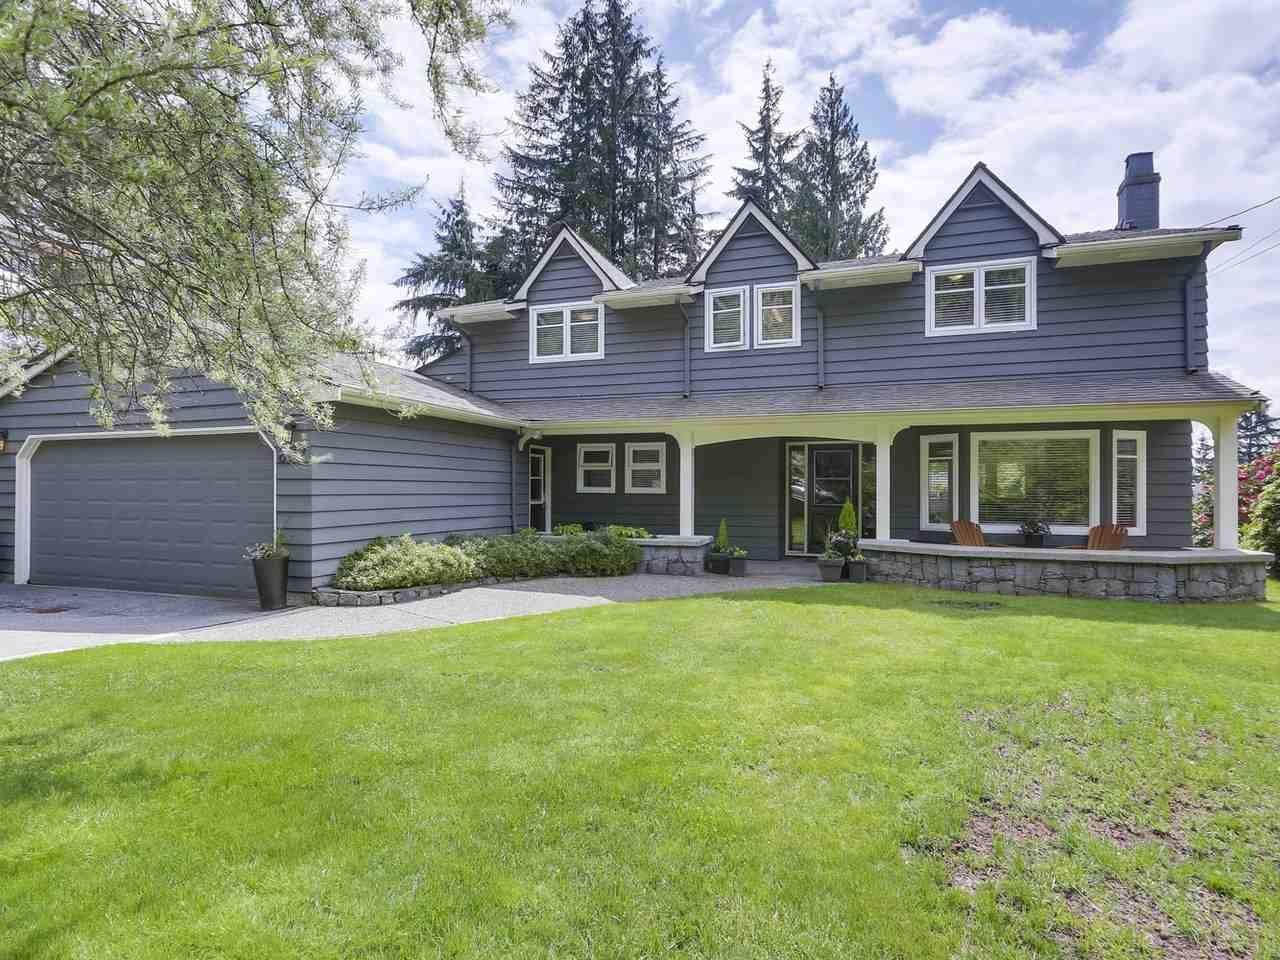 """Main Photo: 877 PROSPECT Avenue in North Vancouver: Canyon Heights NV House for sale in """"Canyon Heights"""" : MLS®# R2268040"""